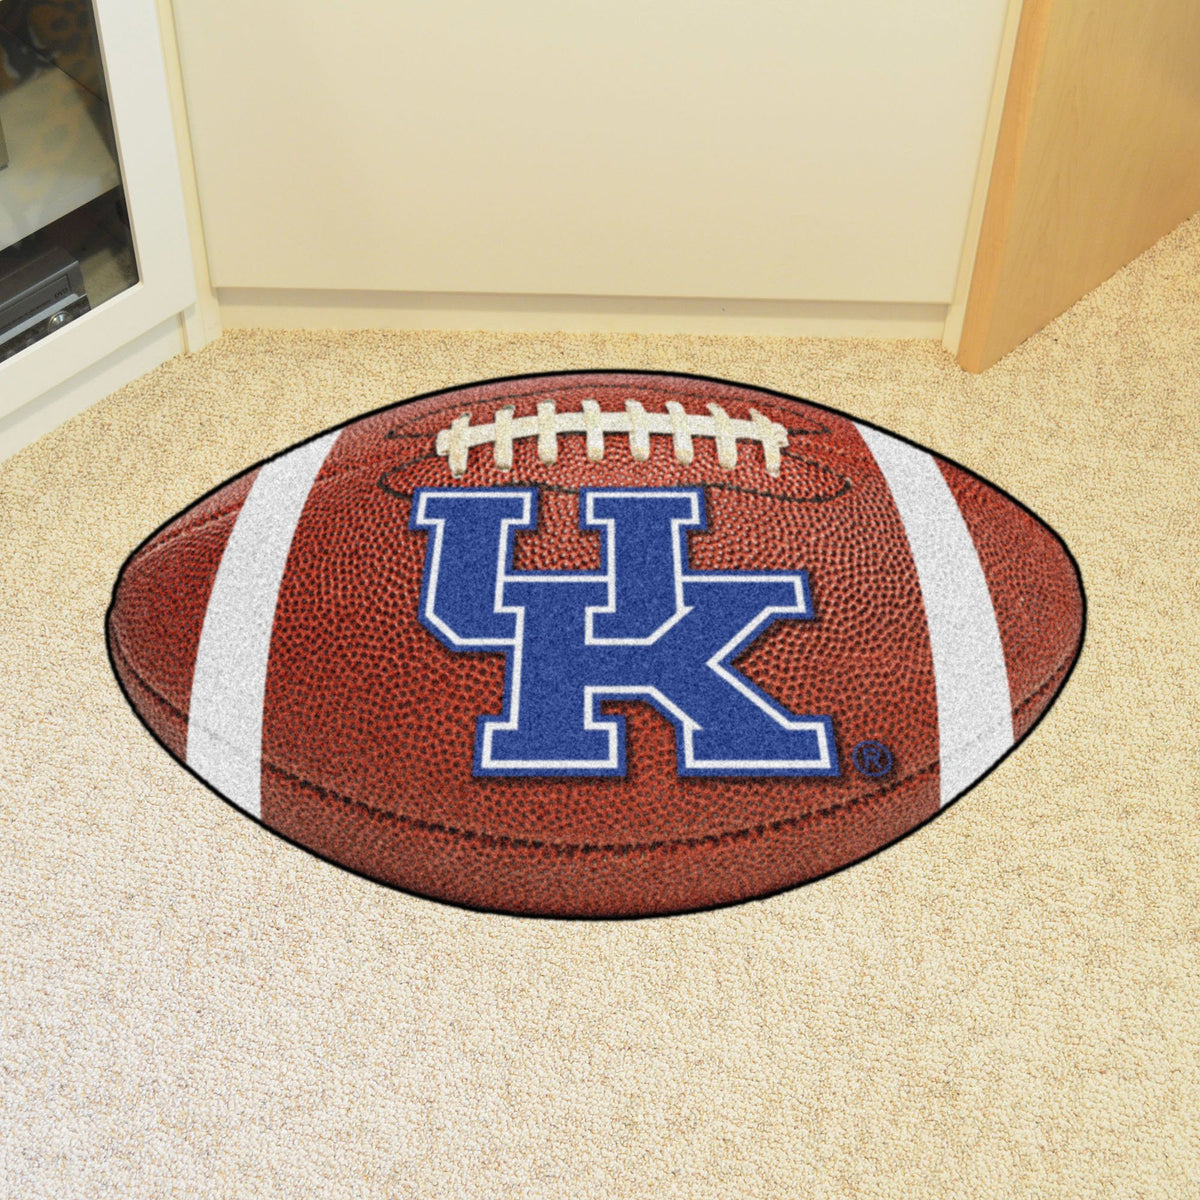 Collegiate - Football Mat: A - K Collegiate Mats, Rectangular Mats, Football Mat, Collegiate, Home Fan Mats Kentucky 2